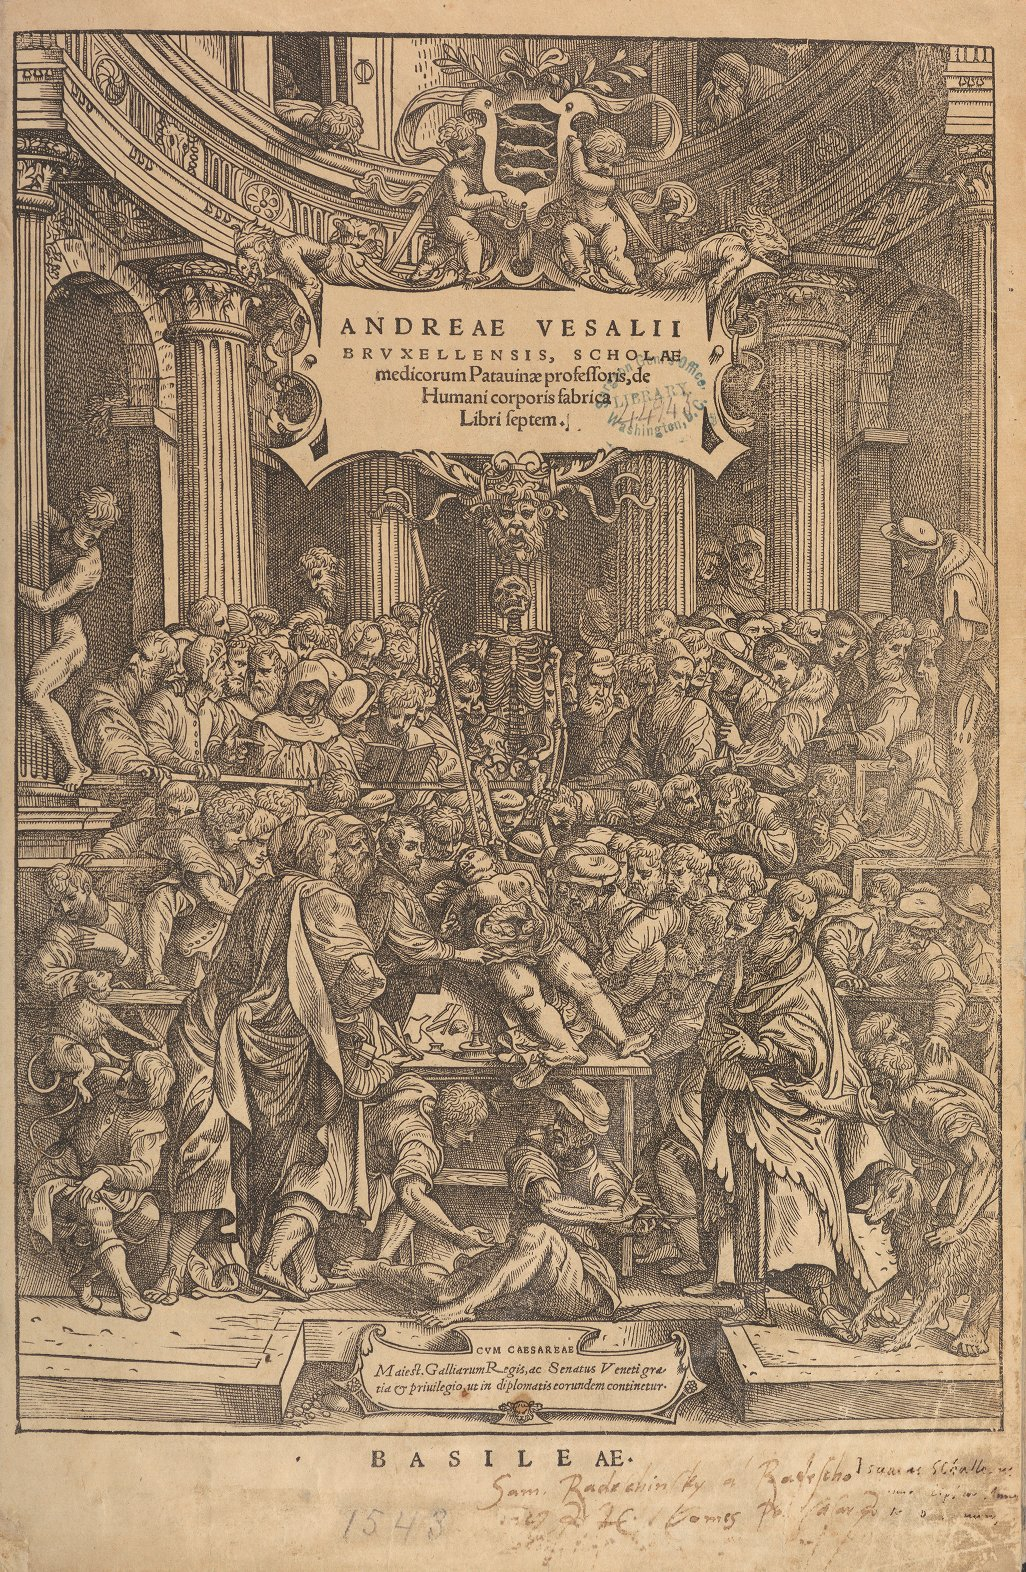 Woodcut frontispiece showing Vesalius dissecting in a crowded operating theater.